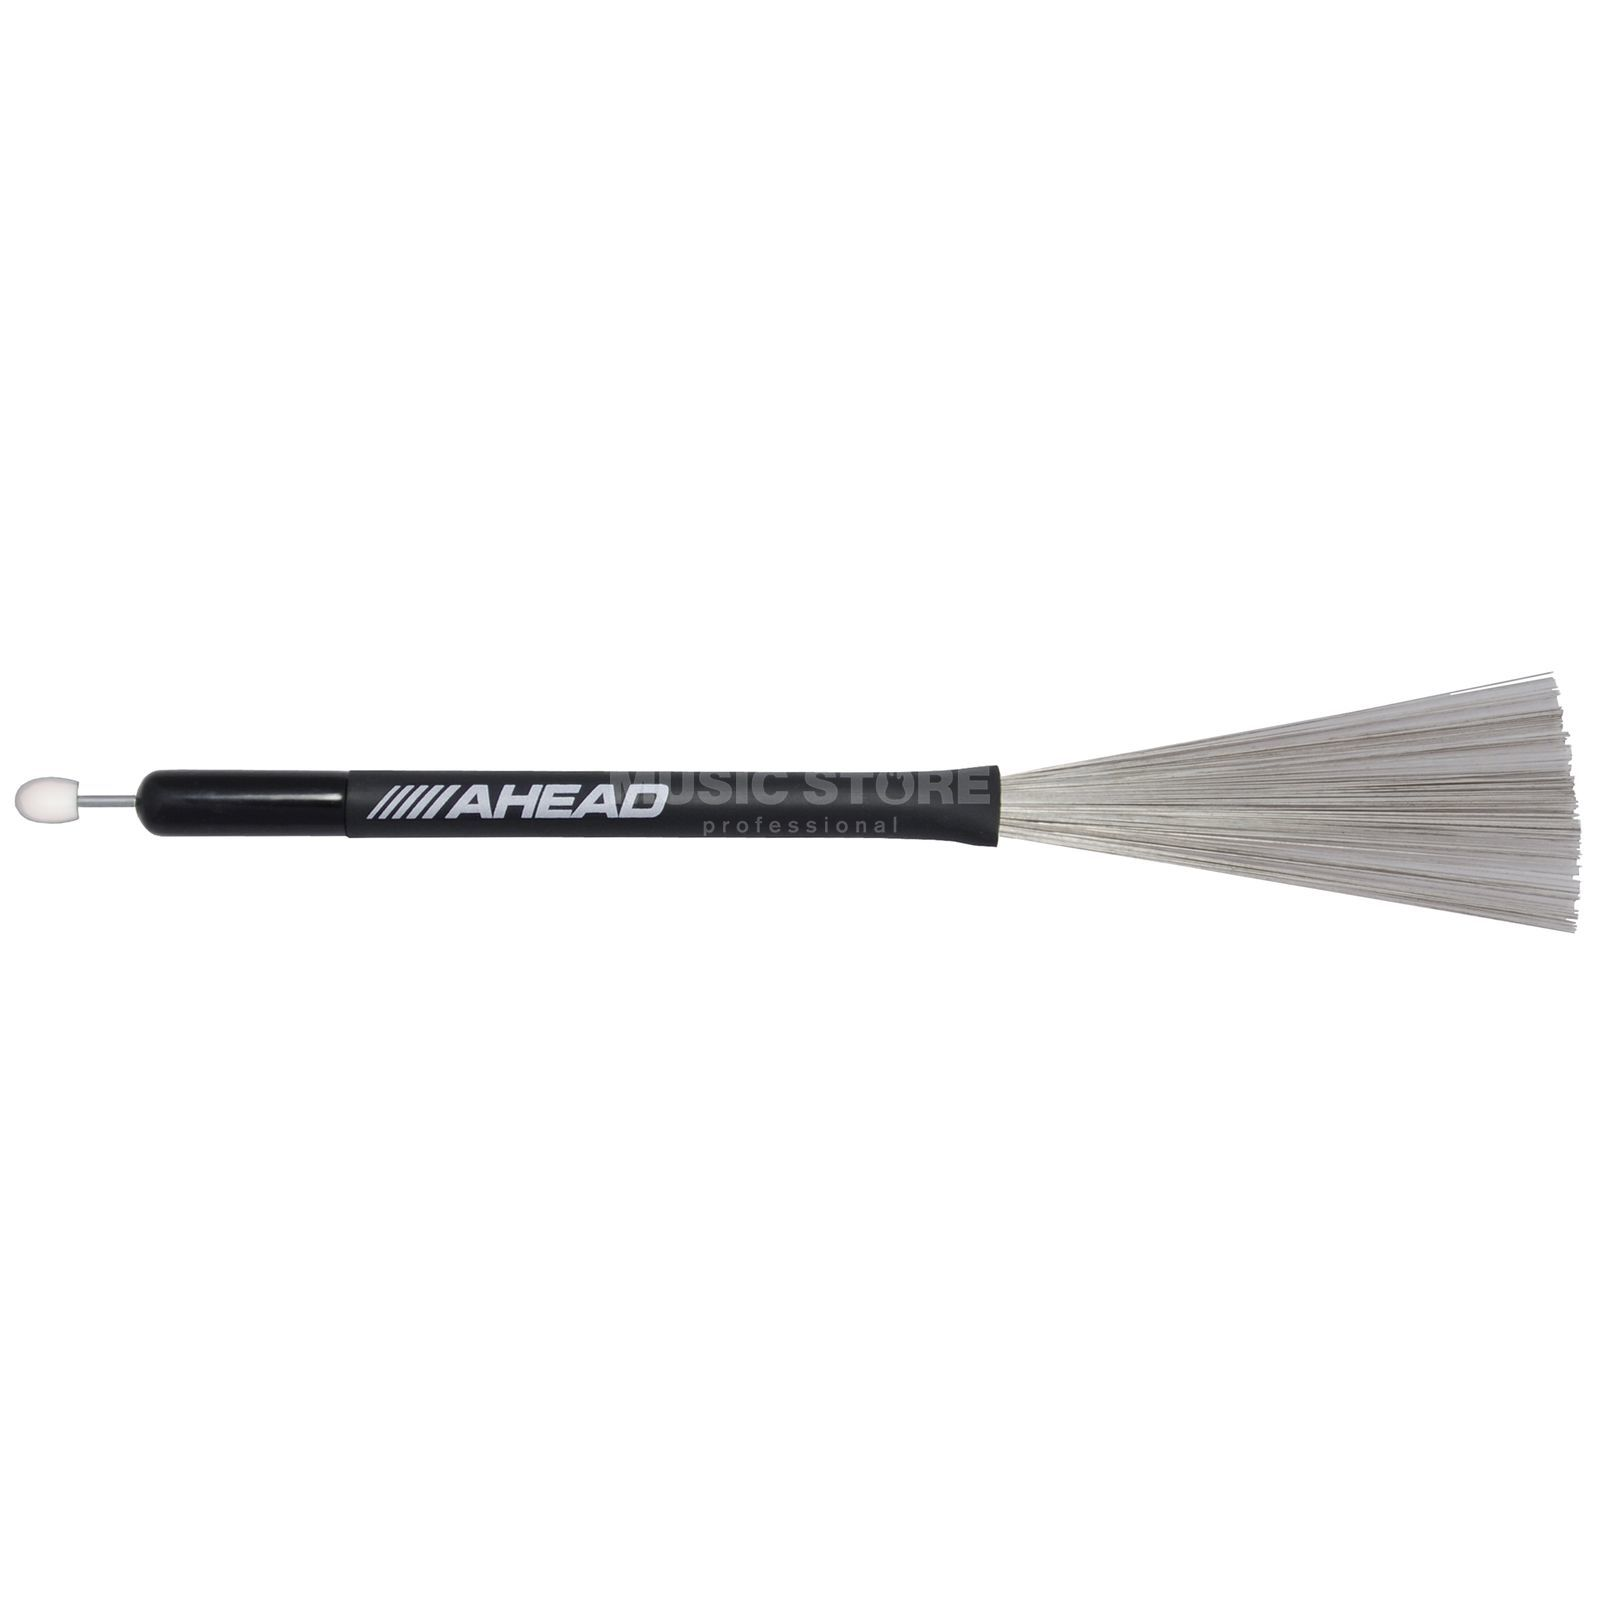 Ahead Sticks Jazz brushes + stick tip SBW  Product Image